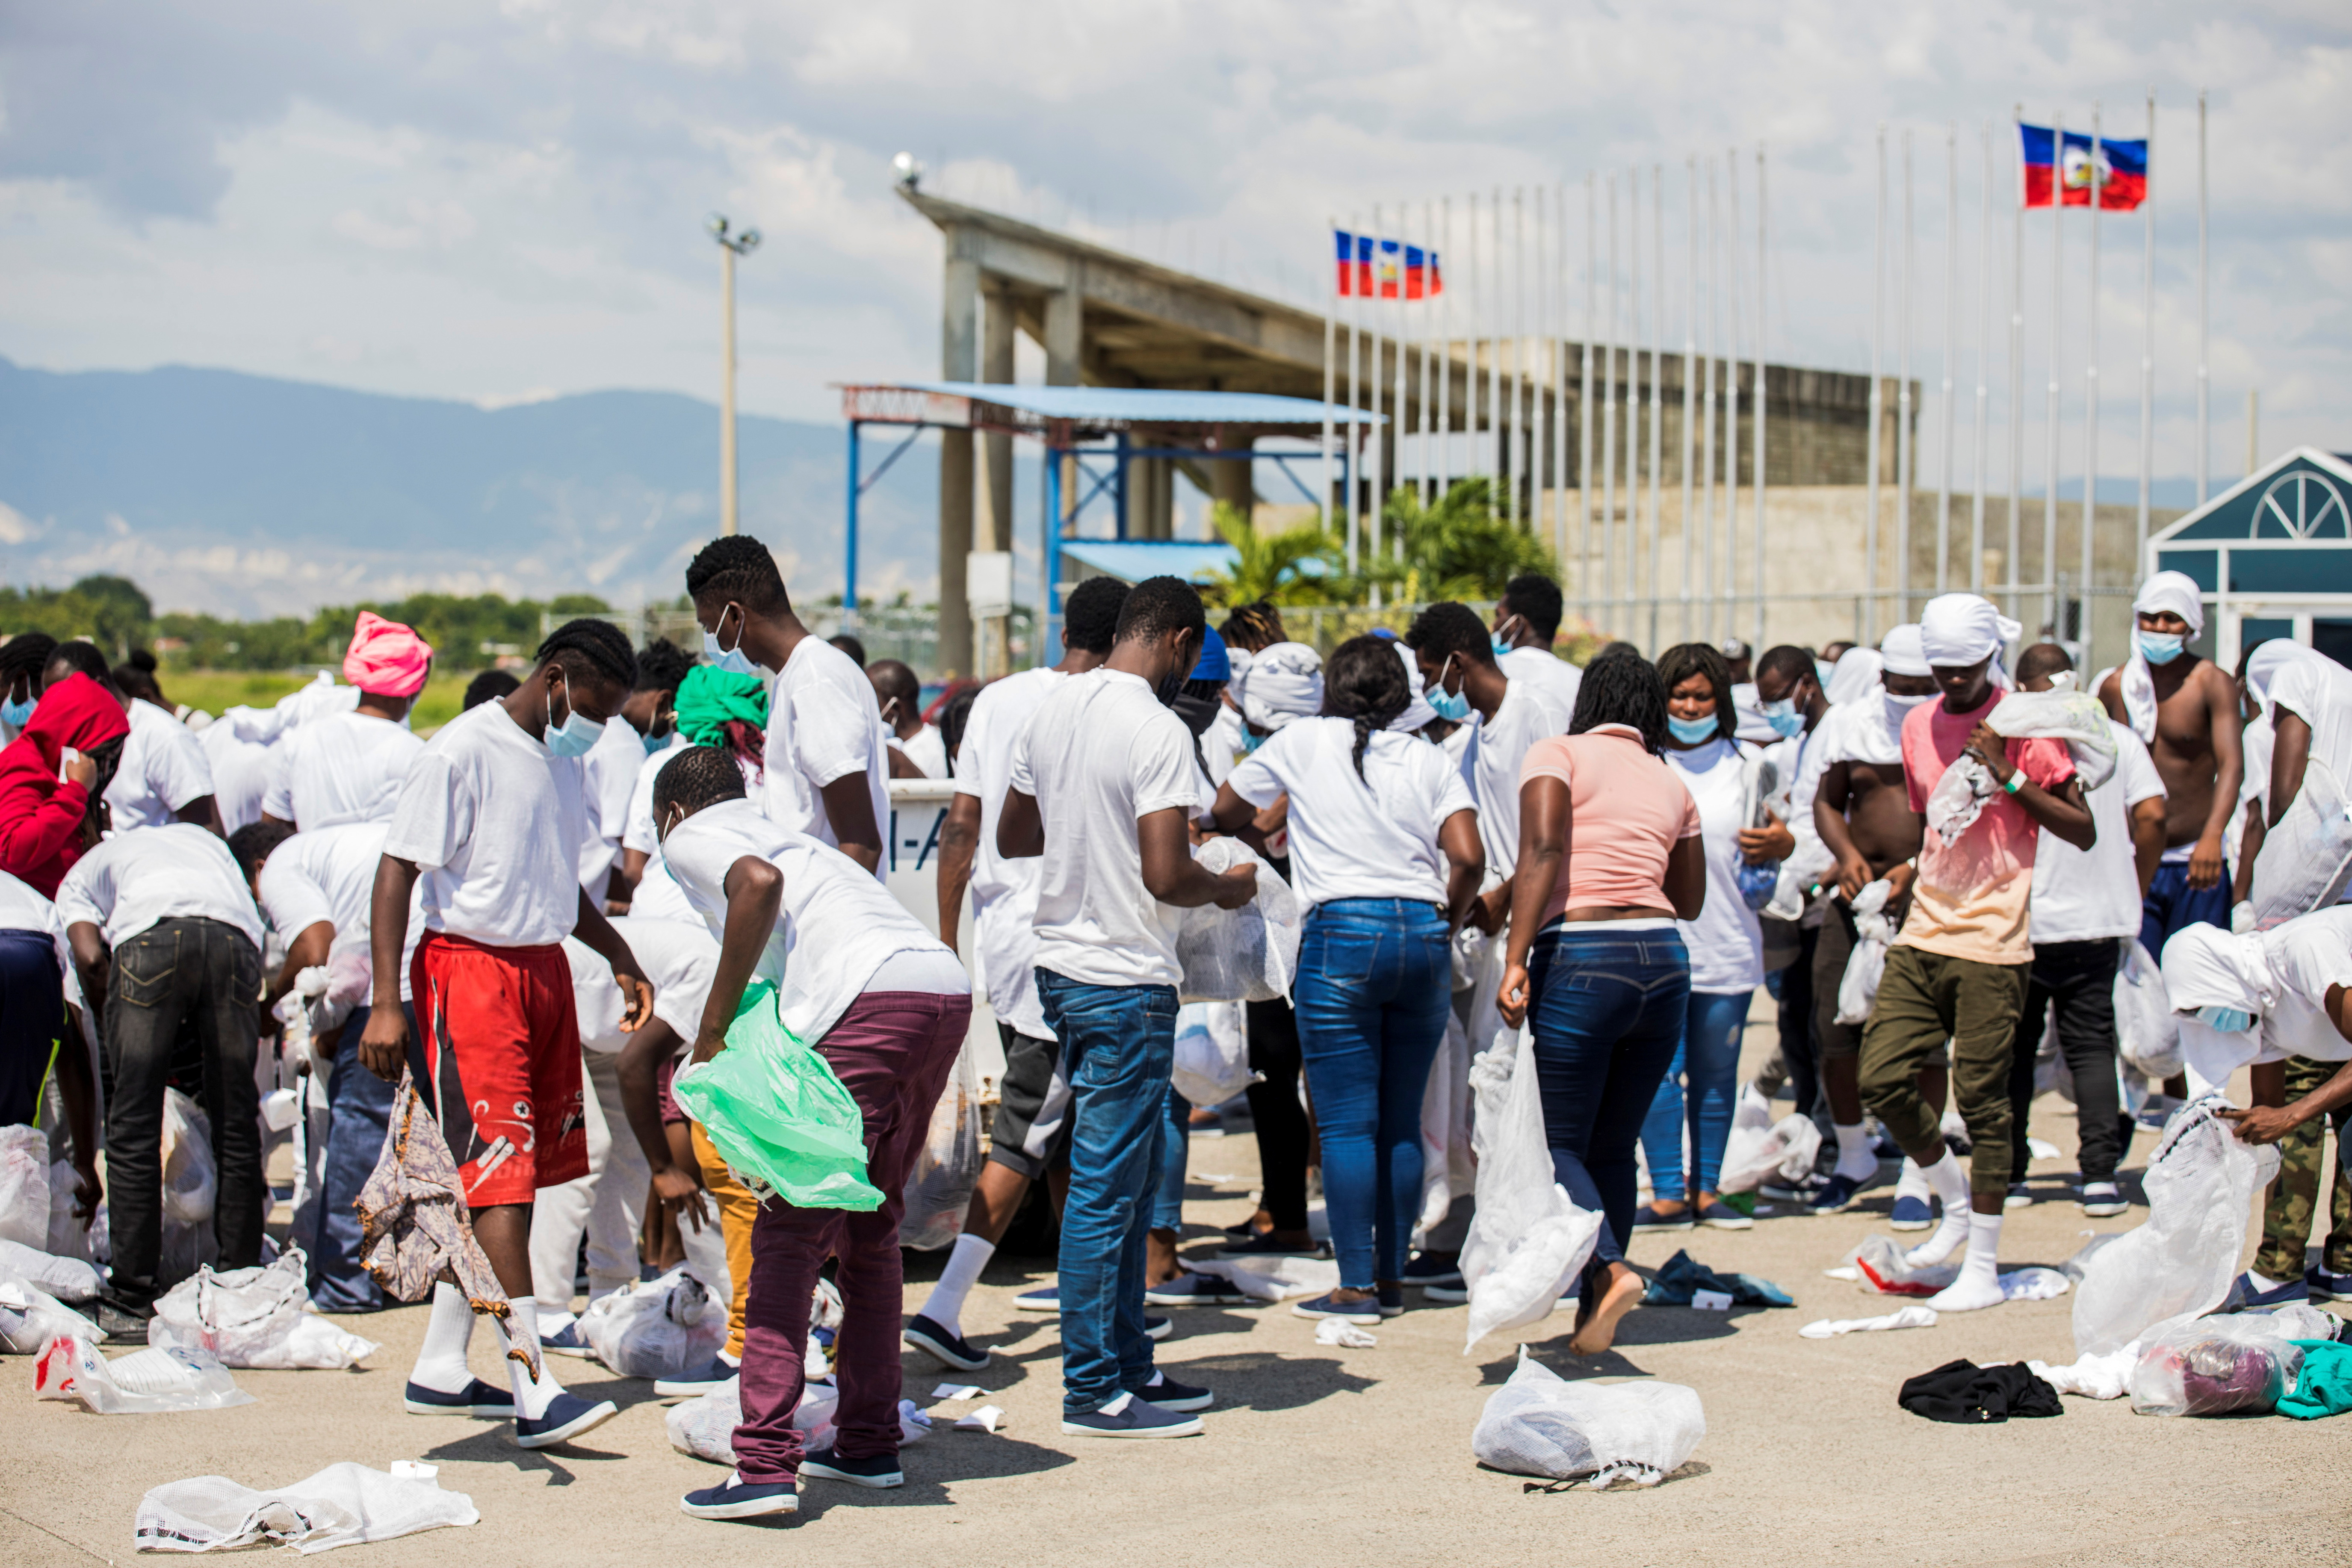 Haitian migrants collect their belongings after U.S. authorities flew them out of a Texas border city after crossing the Rio Grande river from Mexico, at Toussaint Louverture International Airport in Port-au-Prince, Haiti September 21, 2021. REUTERS/Ralph Tedy Erol